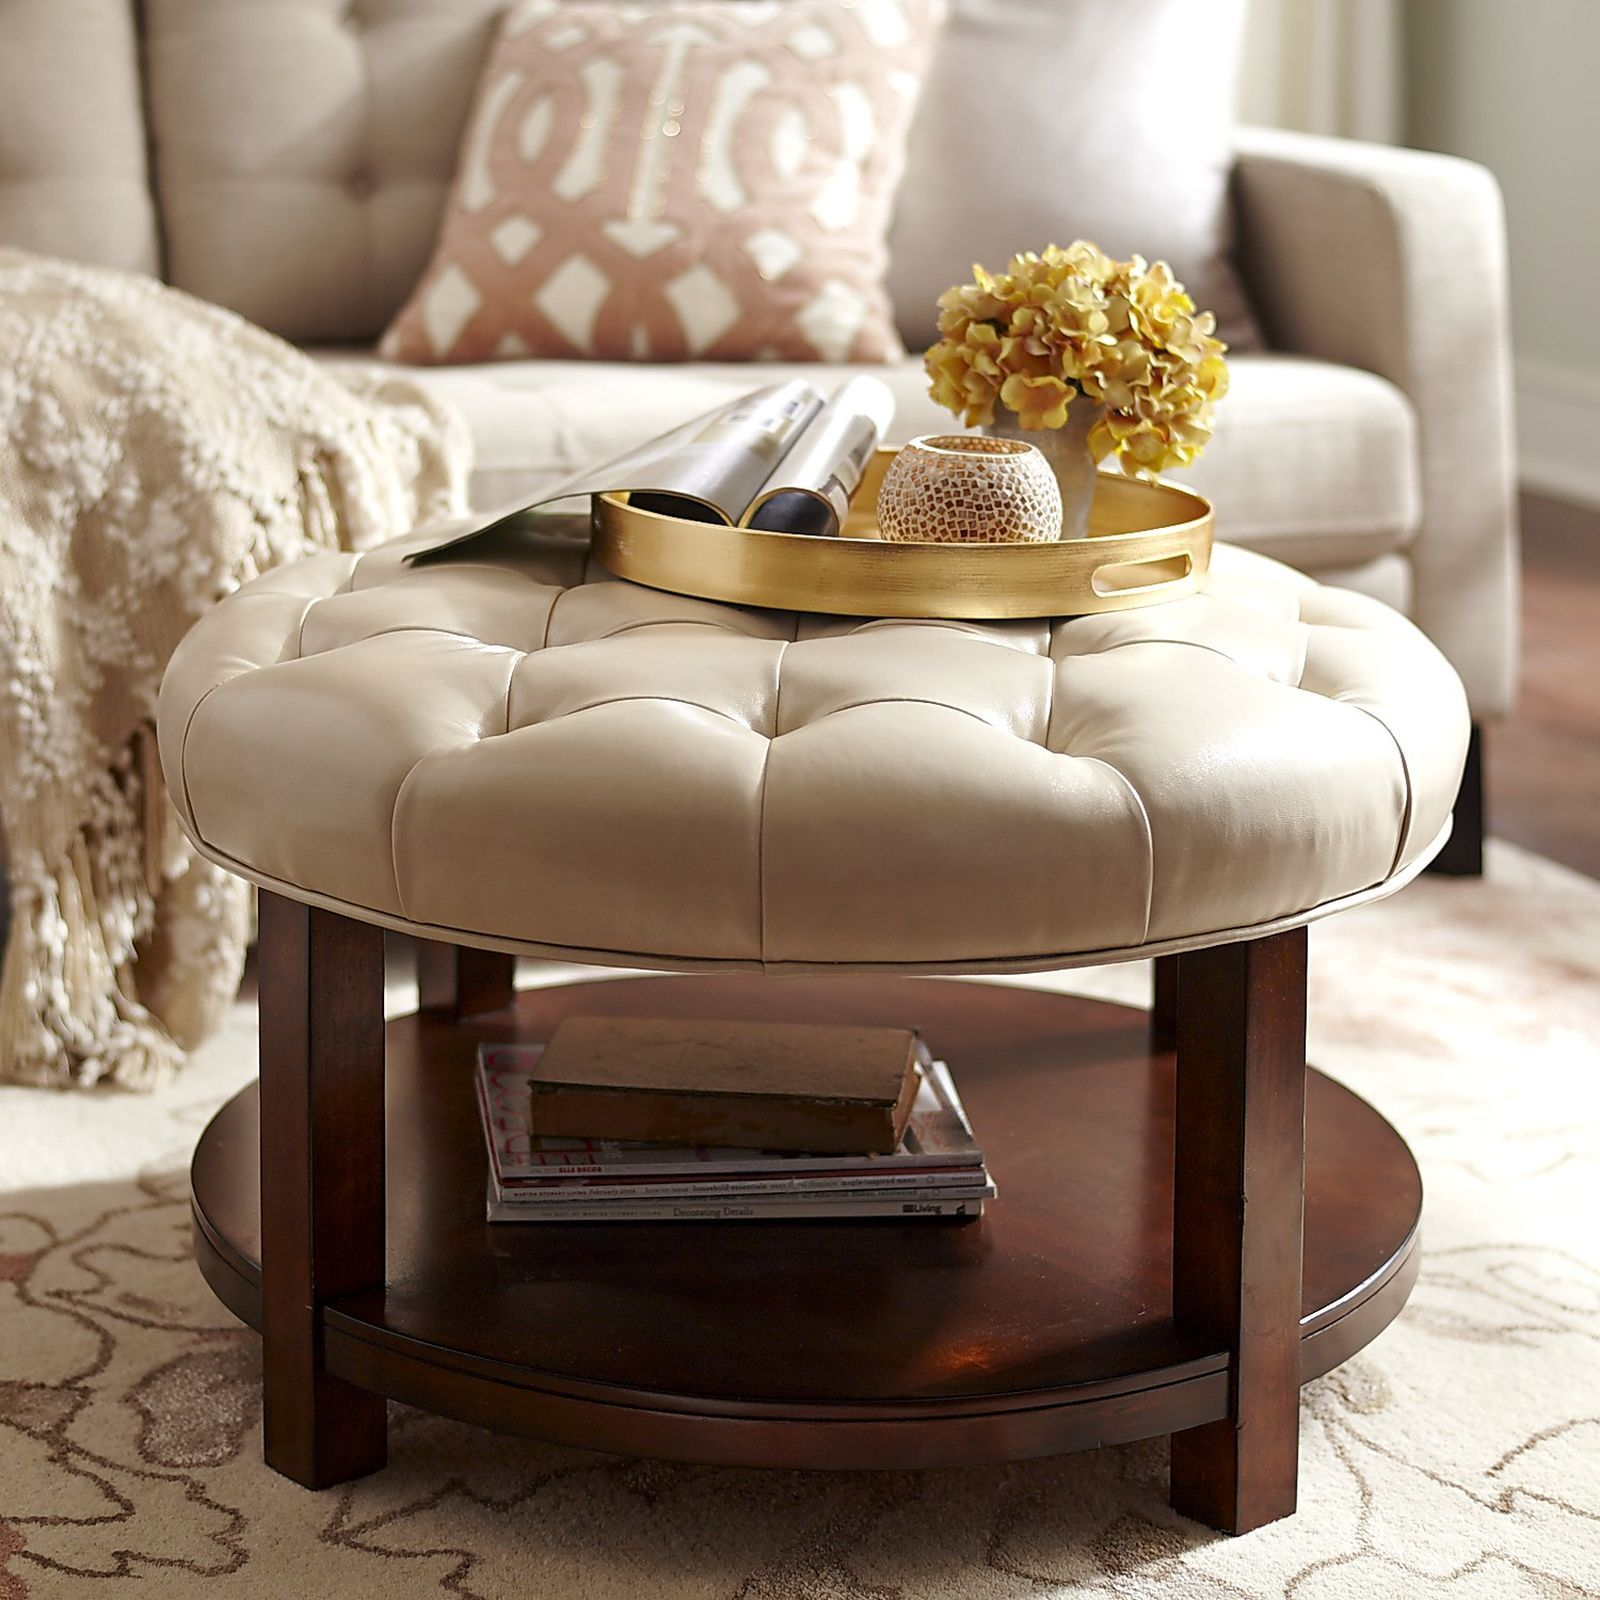 Liard Ivory Round Cocktail Ottoman In 2019 Decor